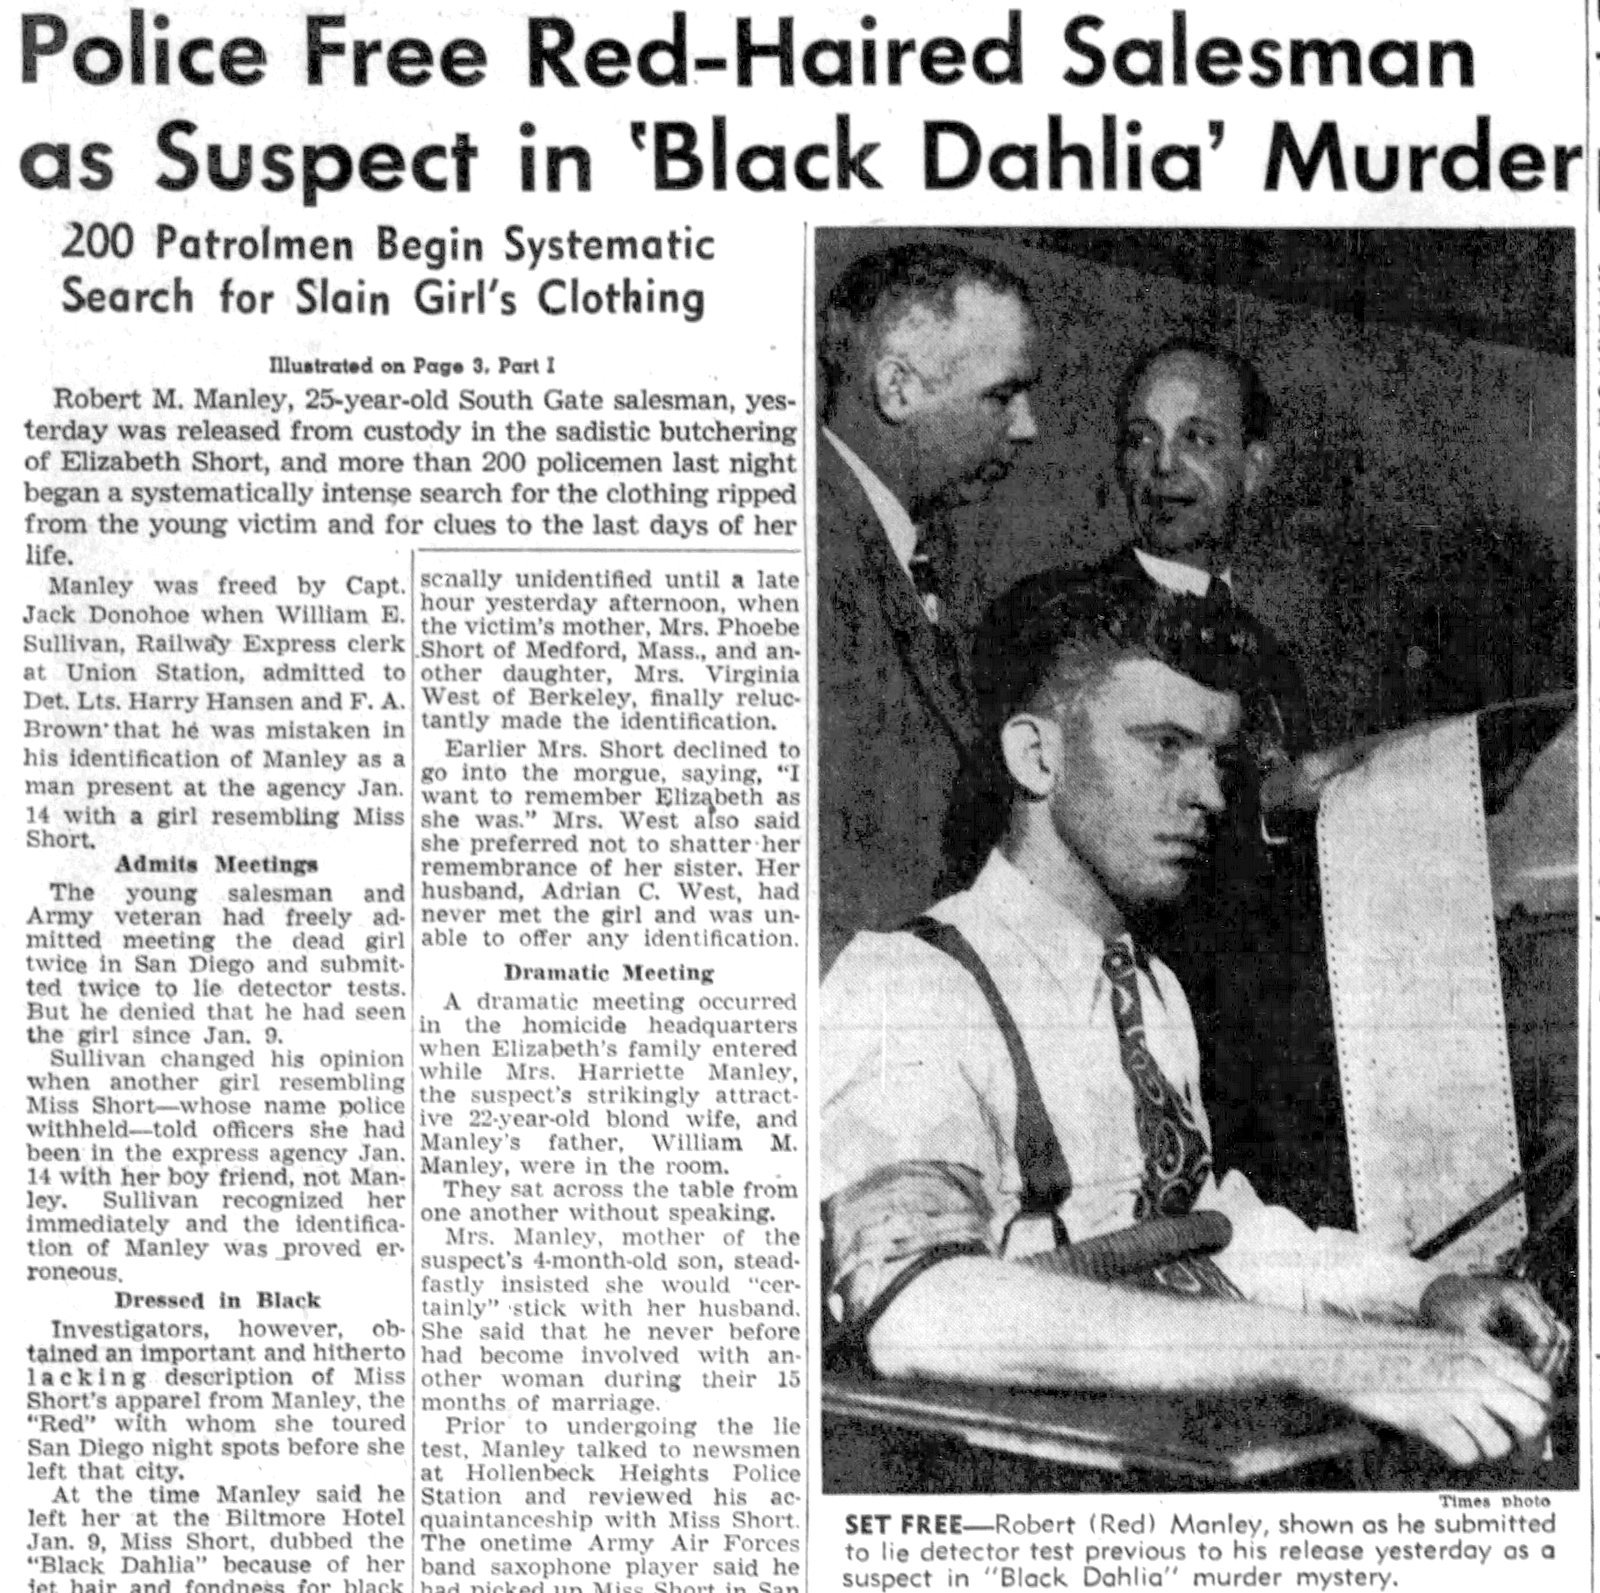 Red Manley - LA Times - January 21 1947